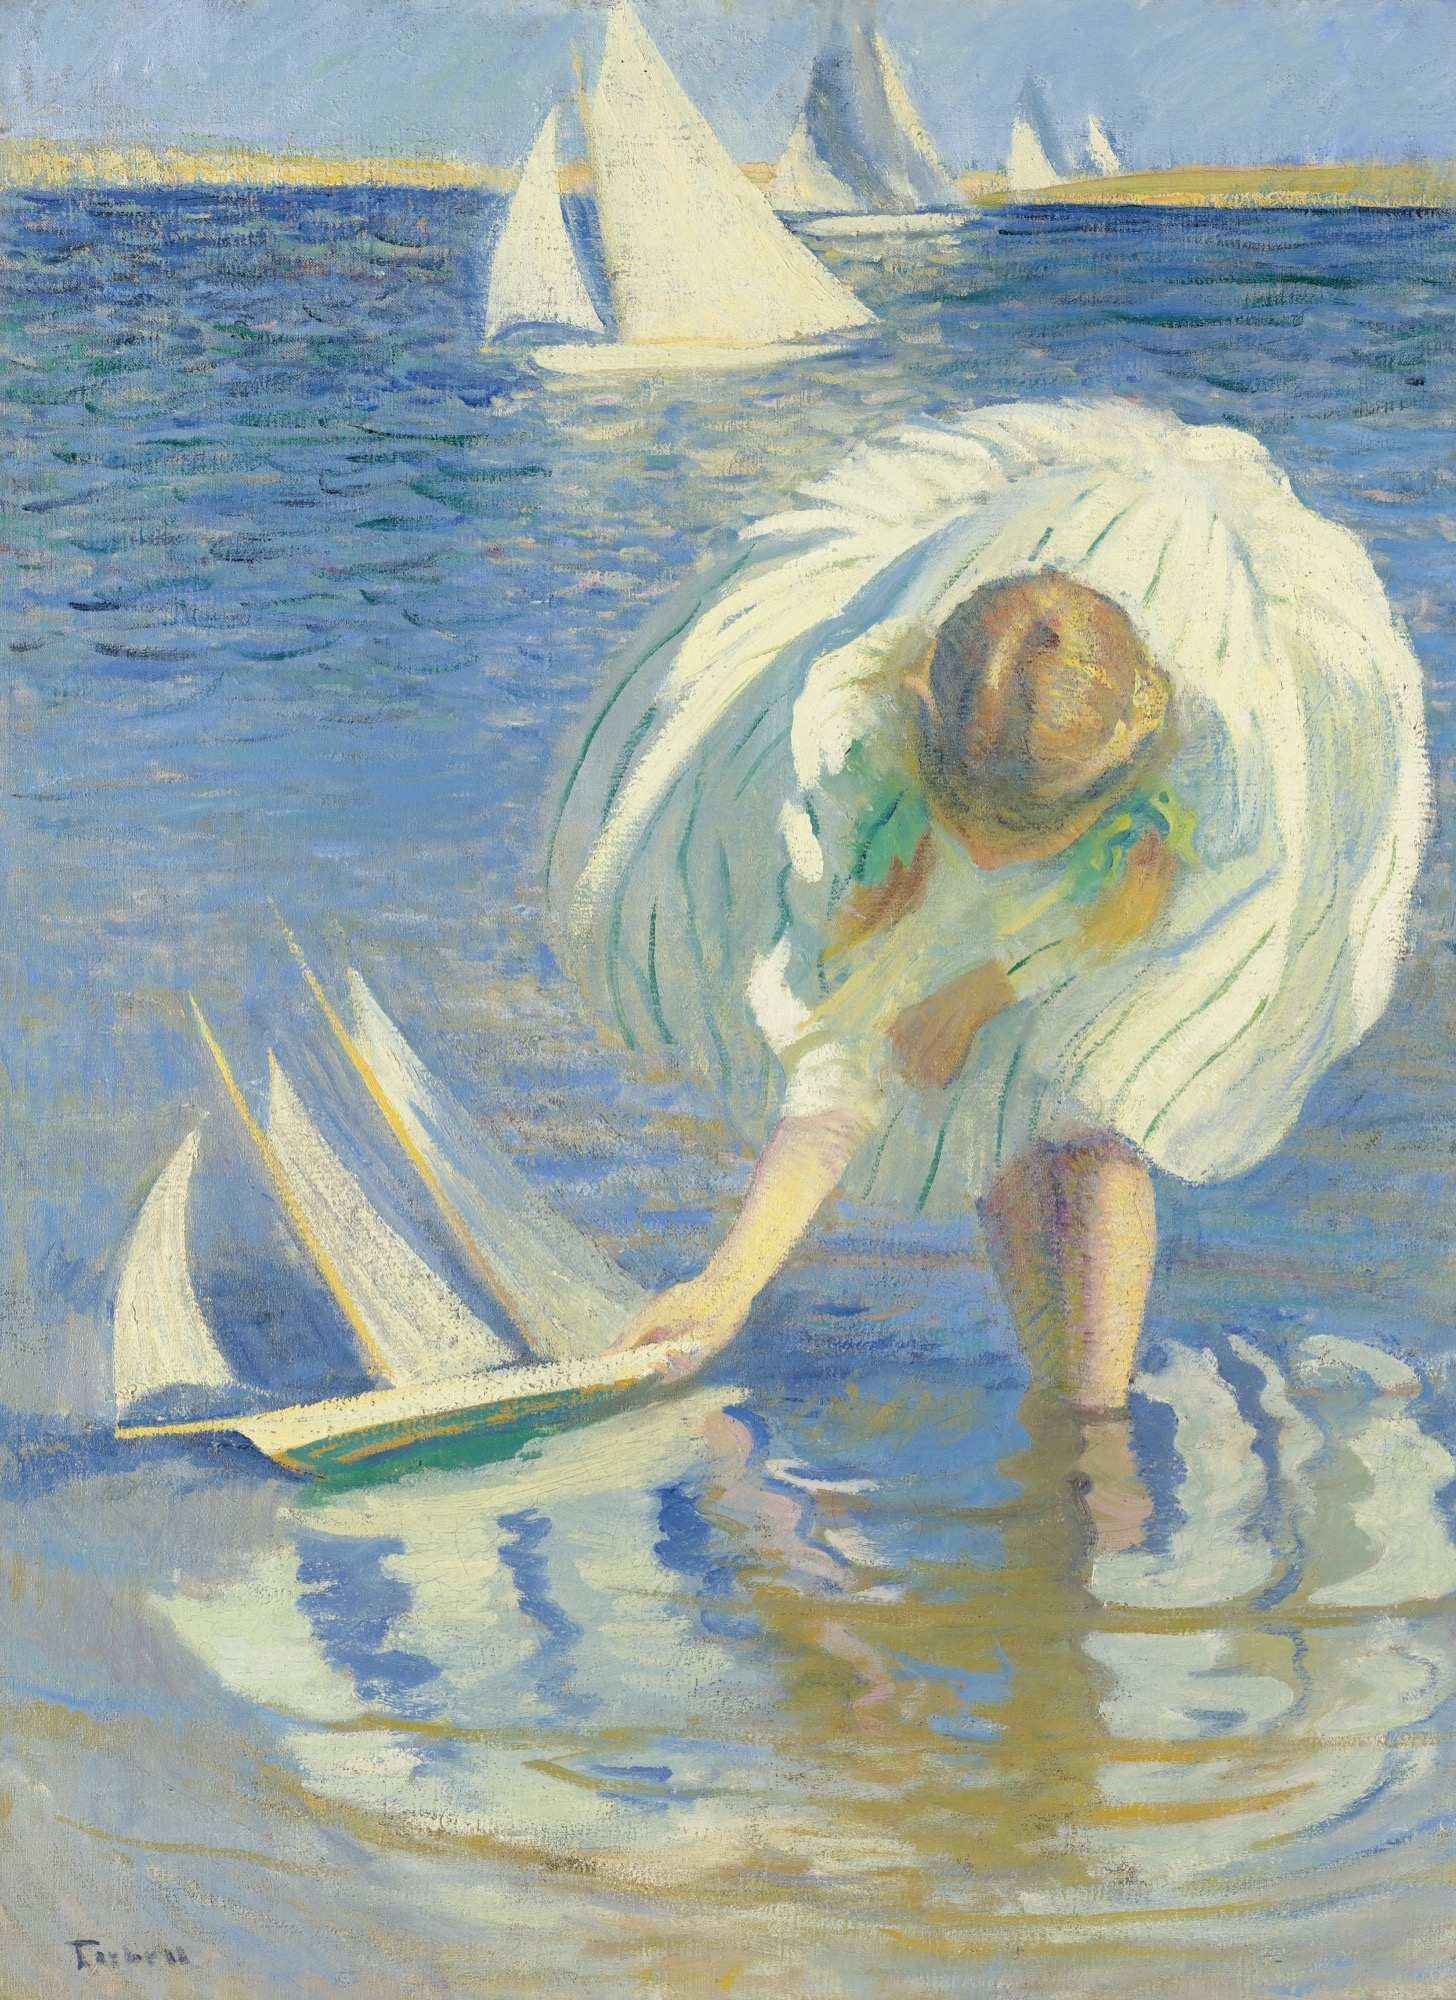 Girl with Sailboat, by Edmund Charles Tarbell, 1899